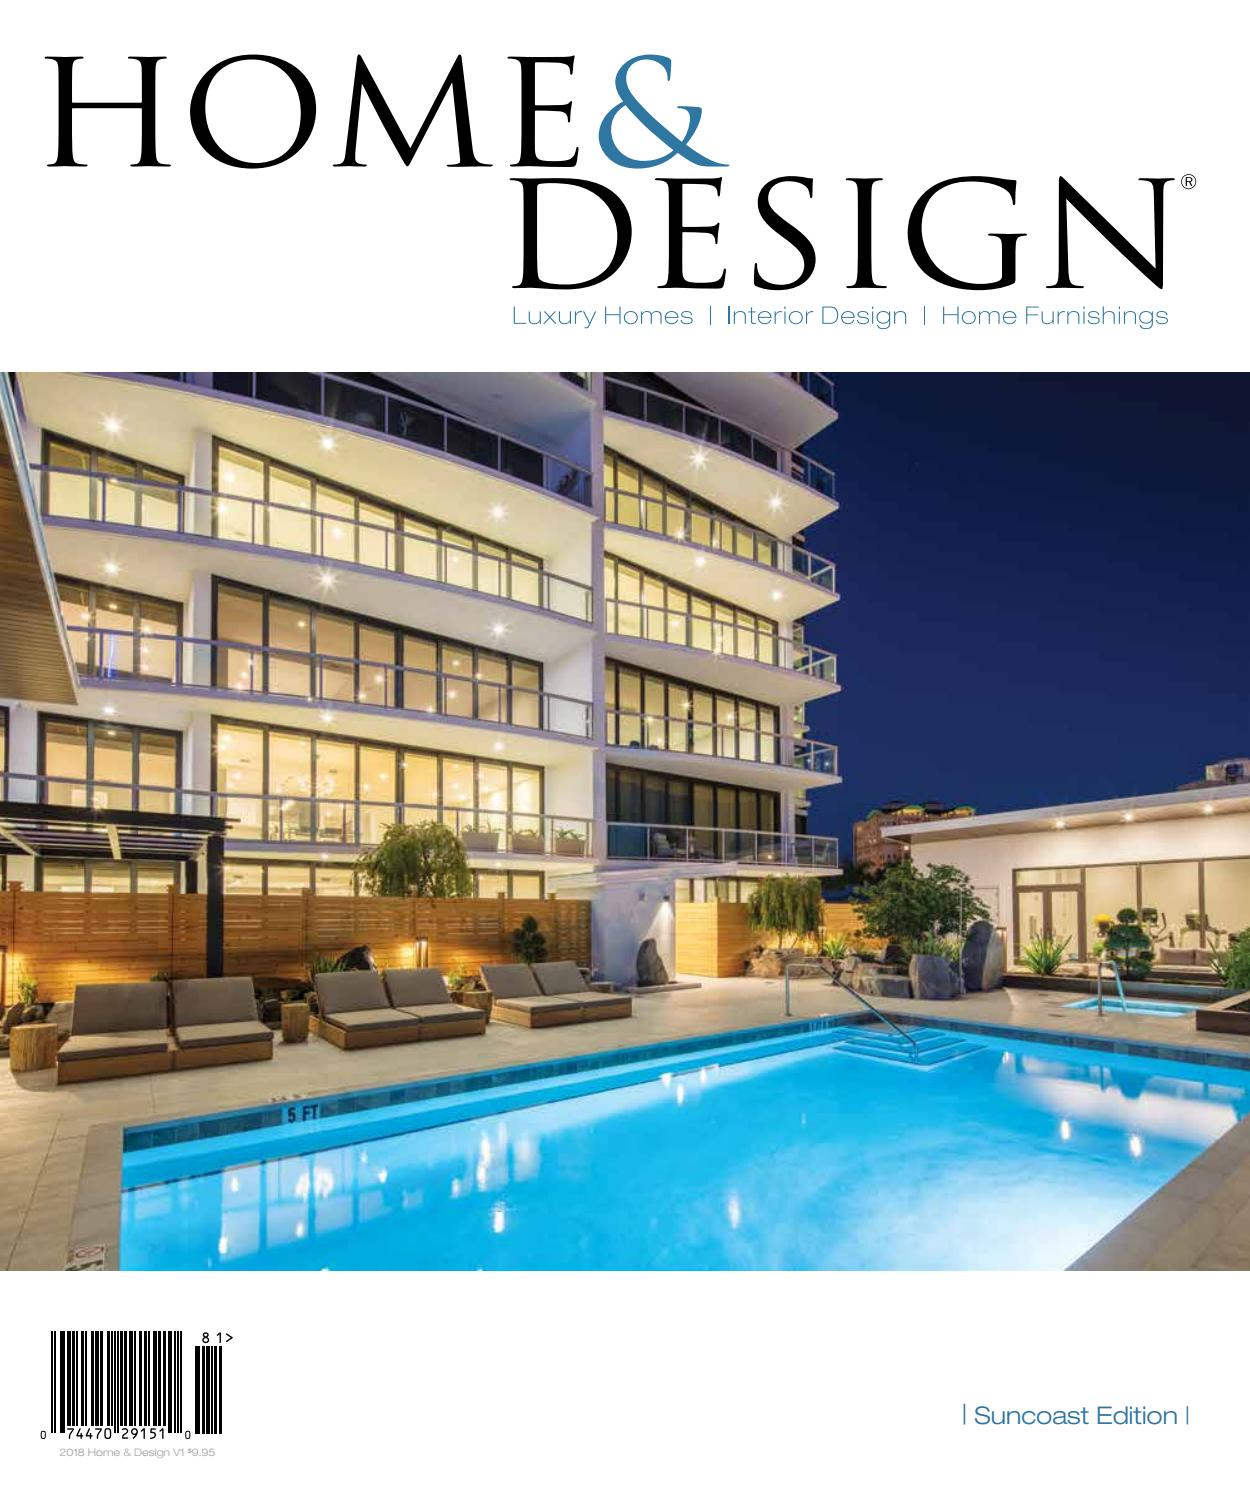 Home Design Magazine Suncoast Florida Edition 2018 By Anthony Spano Issuu